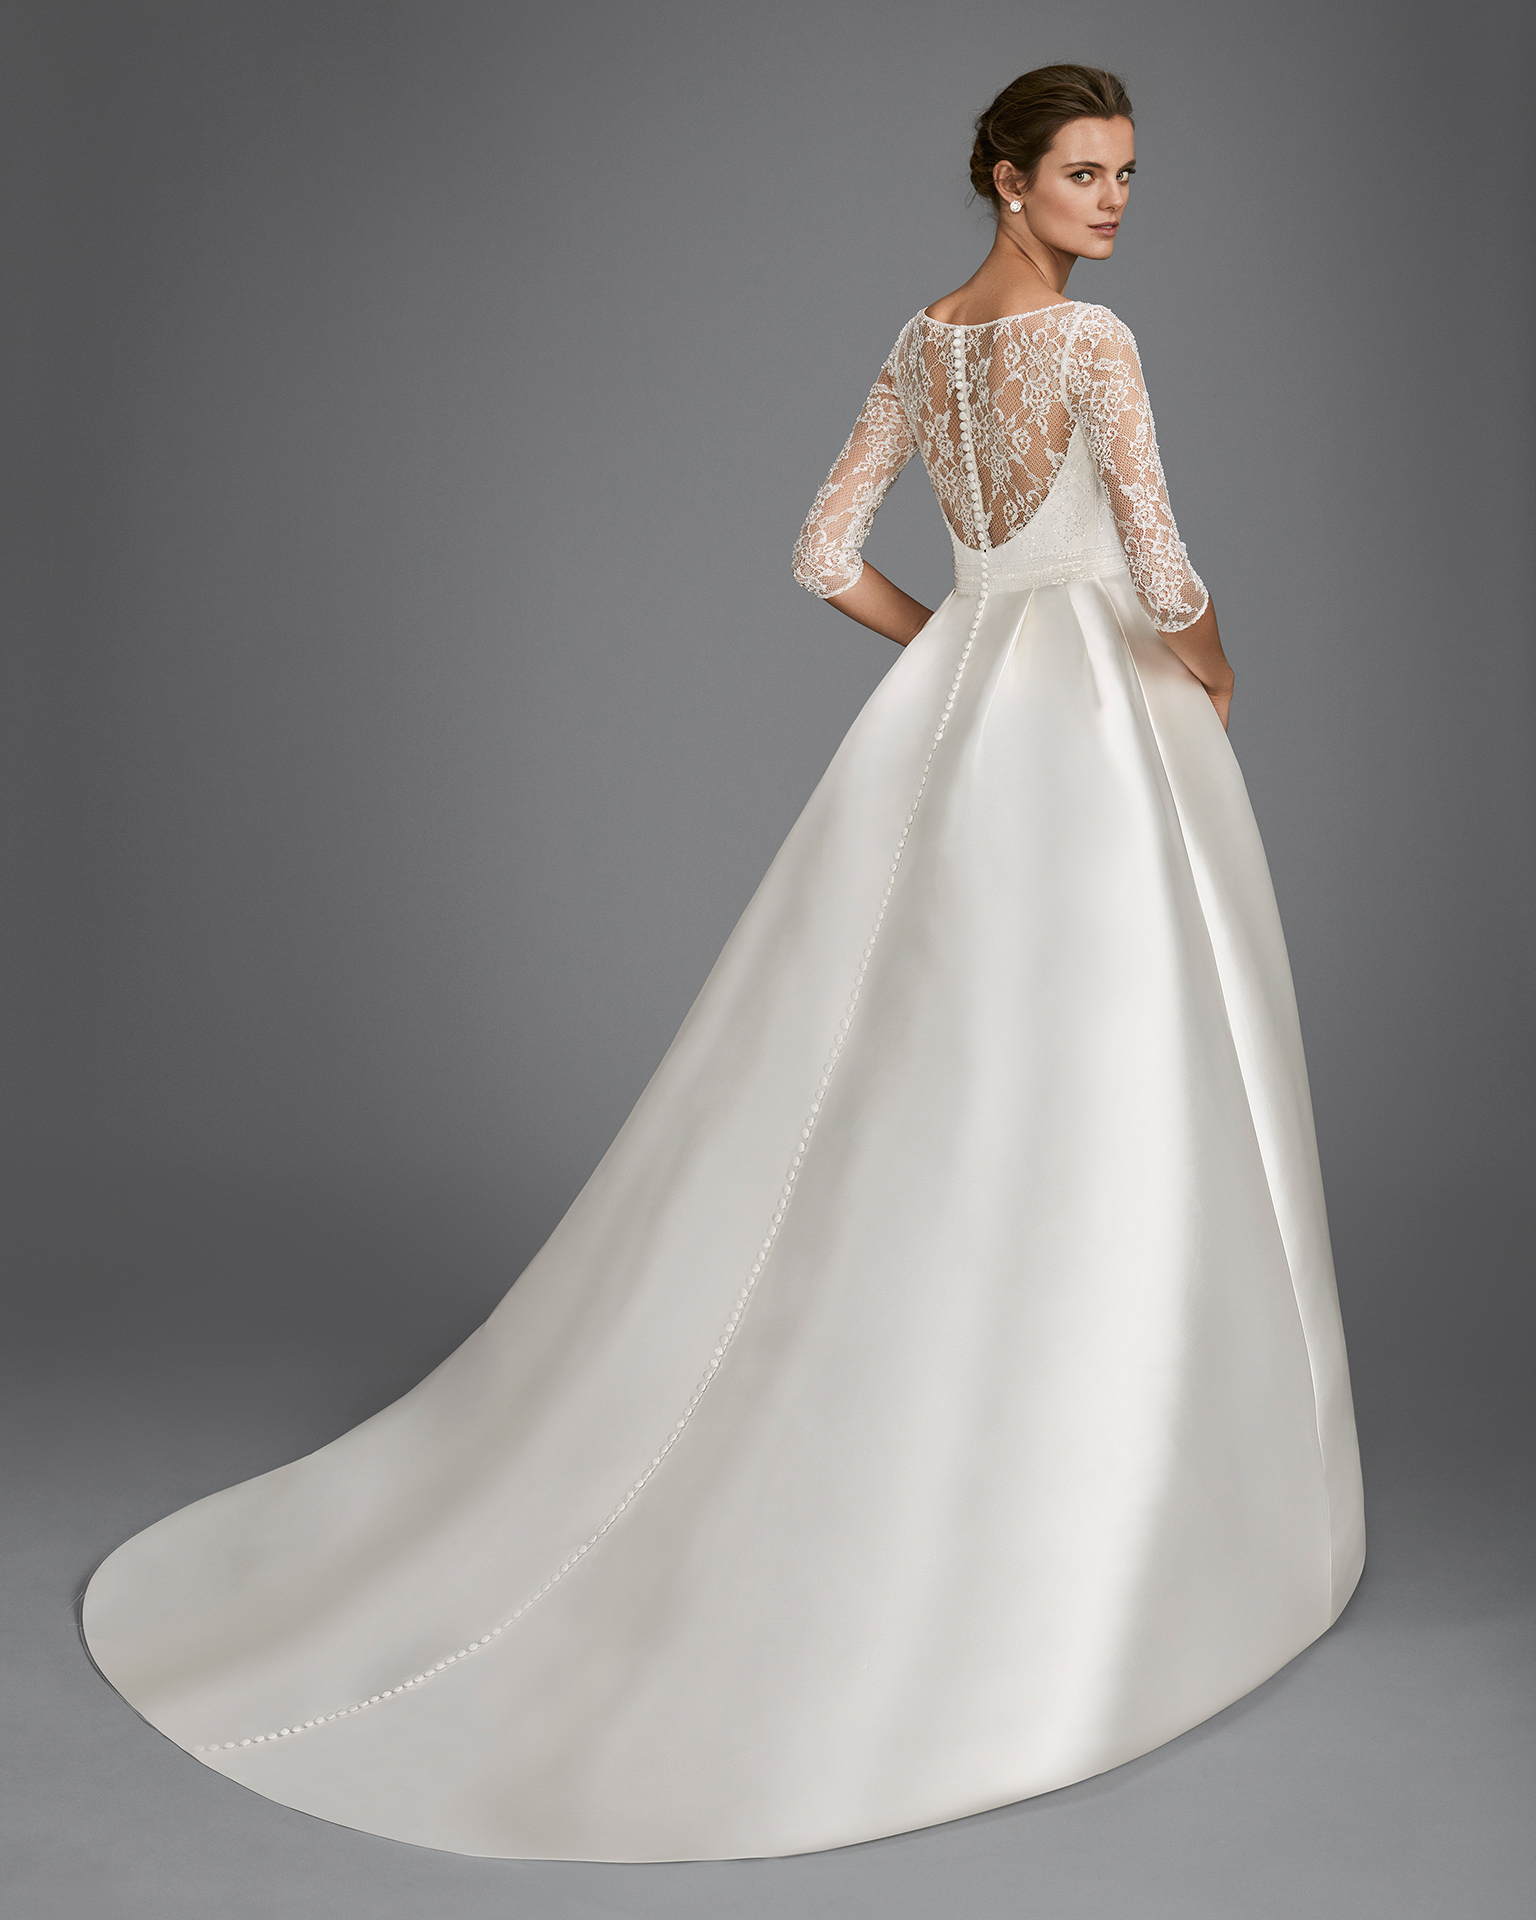 Classic-style beaded lace and mikado wedding dress with three-quarter sleeves and illusion neckline.